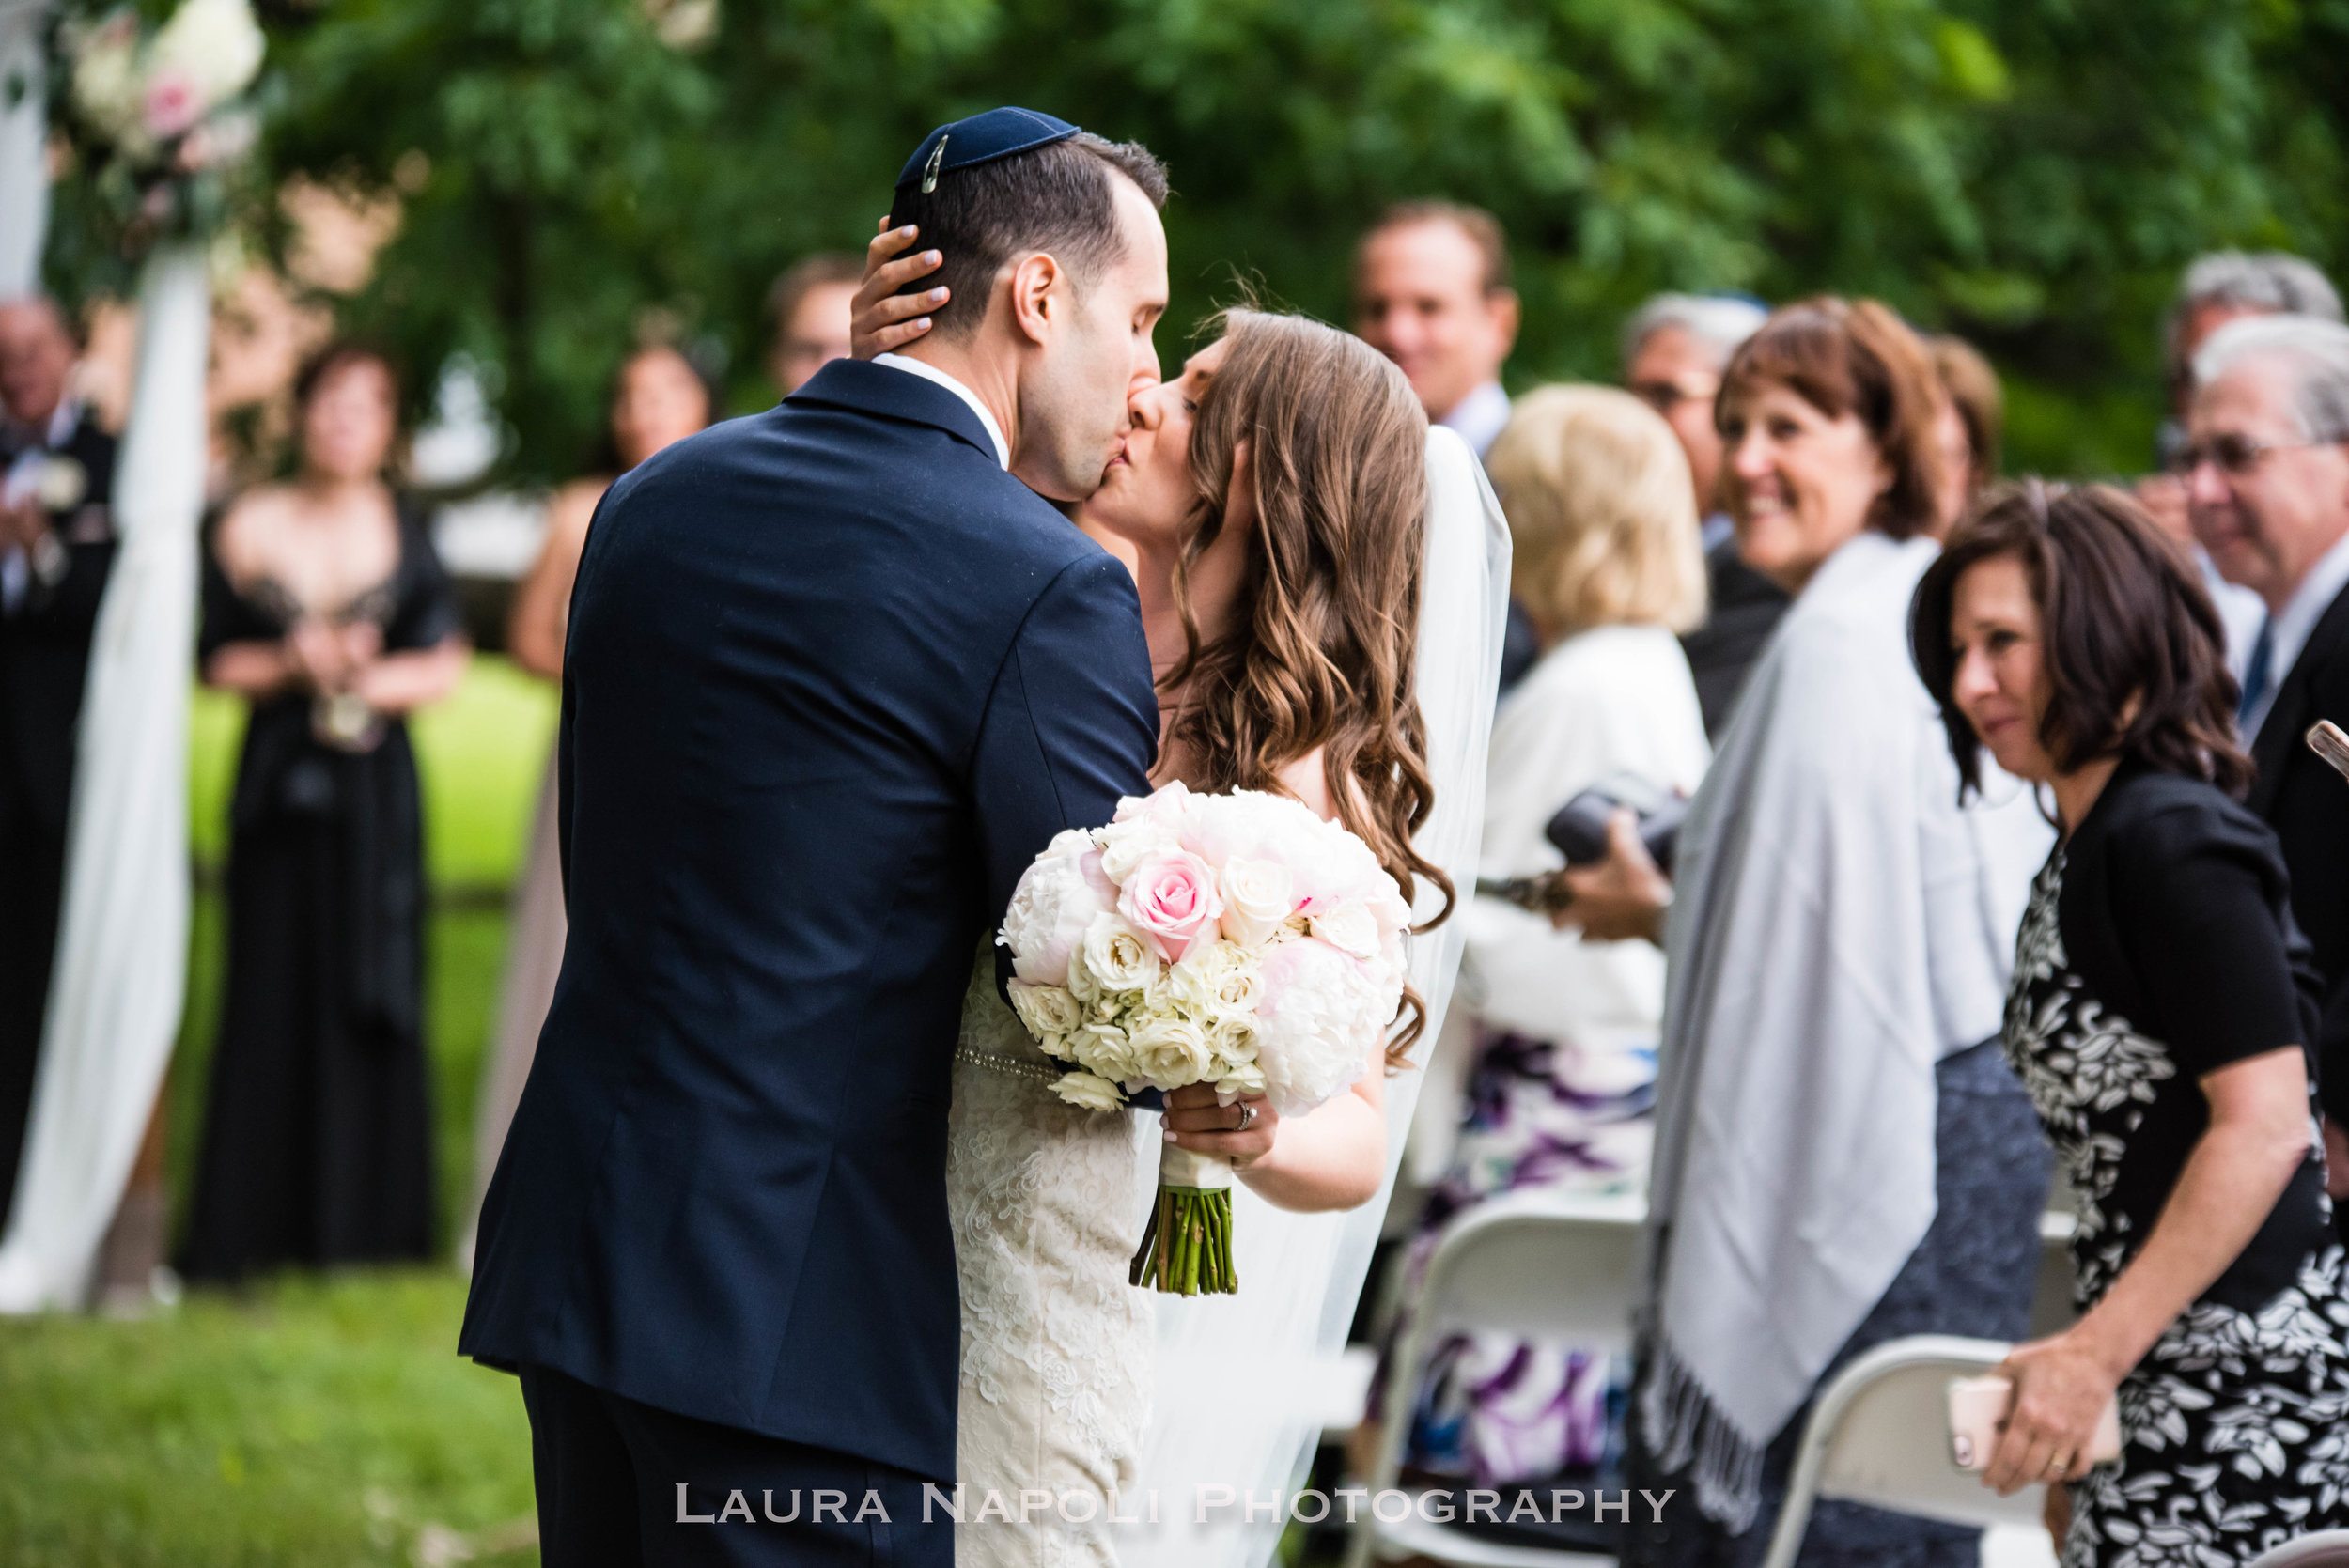 collingswoodballroomweddingsouthjerseyweddingphotographer-41.jpg